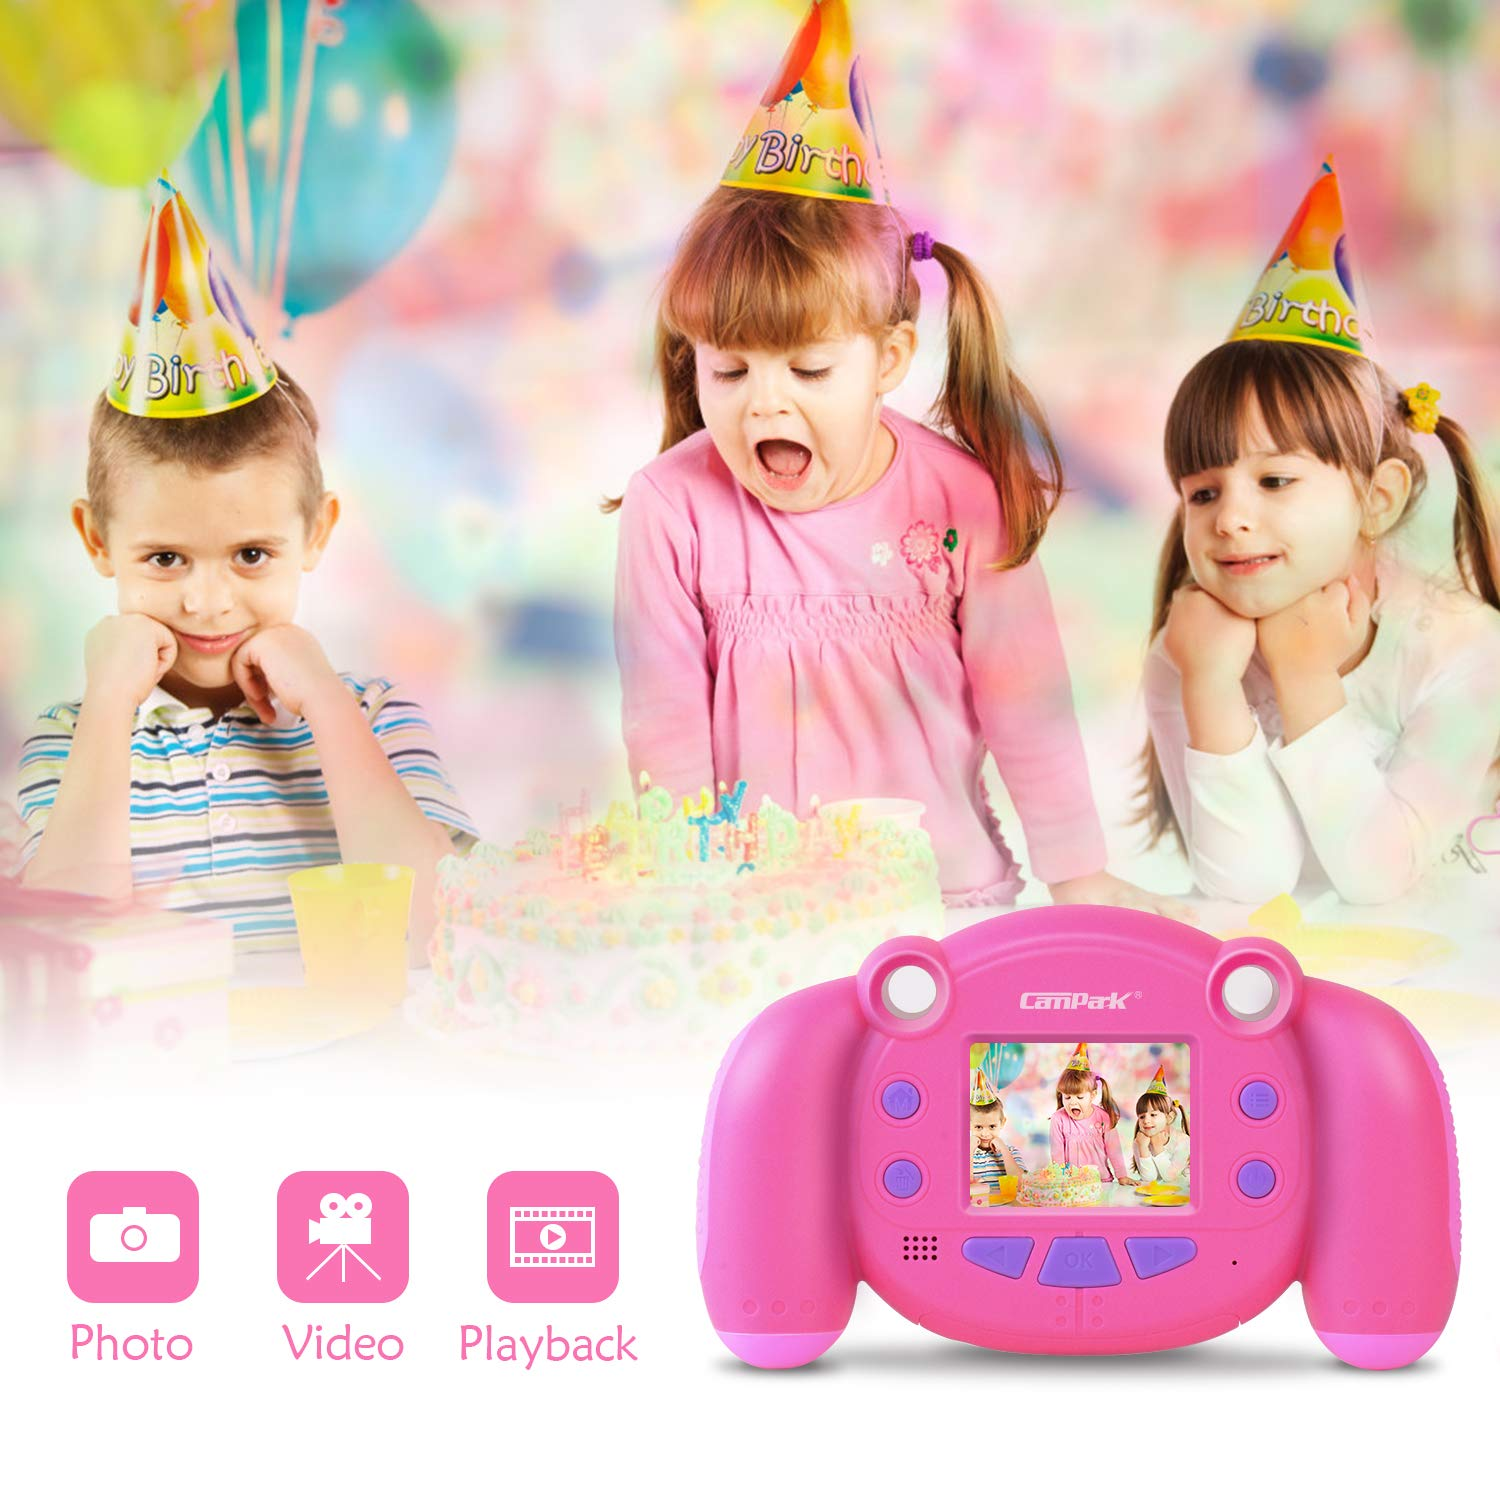 Campark Kids Camera, Mini Child Camcorder with HD LCD Display 16GB Memory Card for Girls Pink Great Birthday Gift by Campark (Image #2)